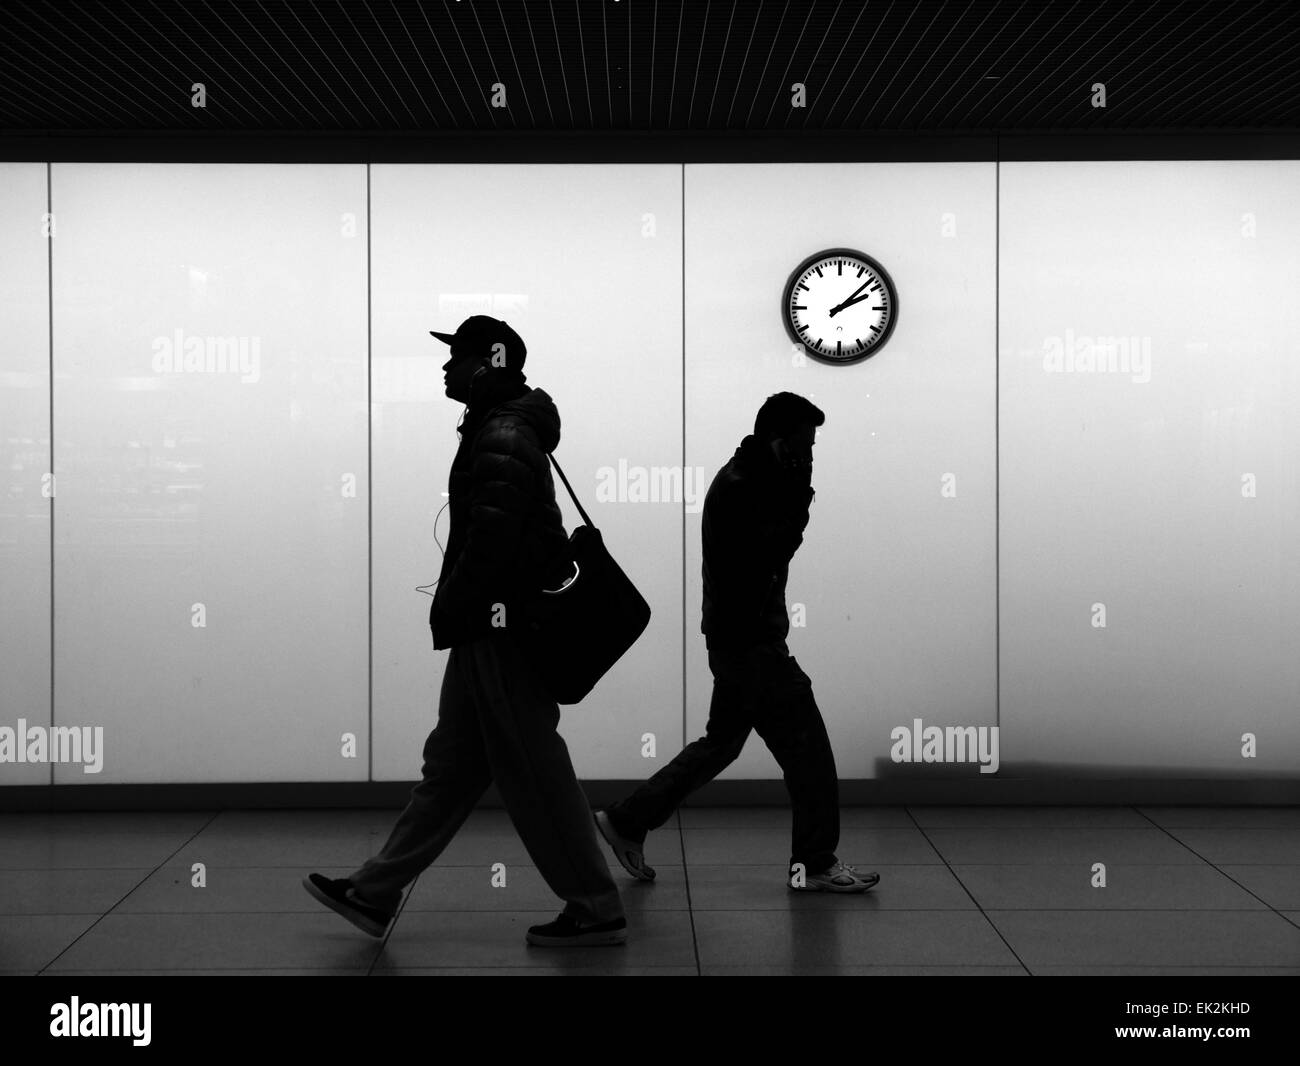 Urban City Commuters hurry commuting under wall clock. Modern commuters listening music or talking with smartphone - Stock Image